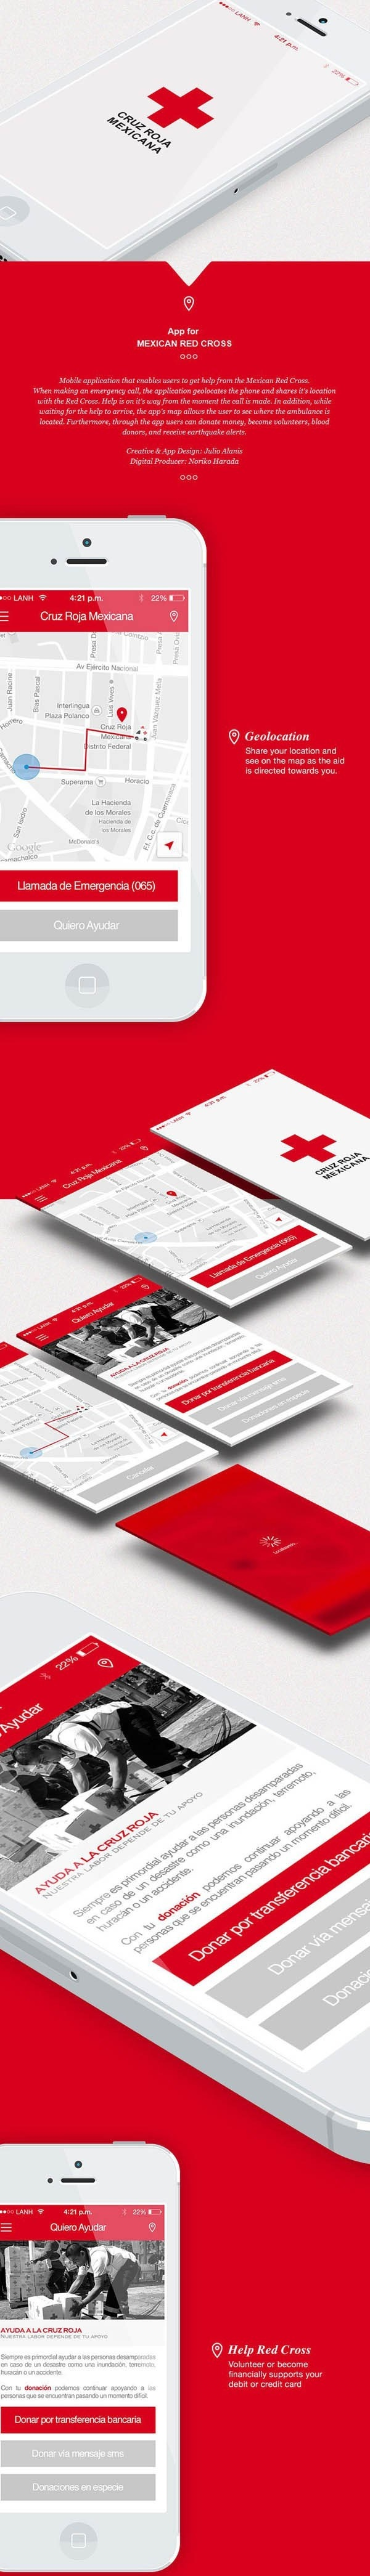 MEXICAN RED CROSS App by Julio Alanis